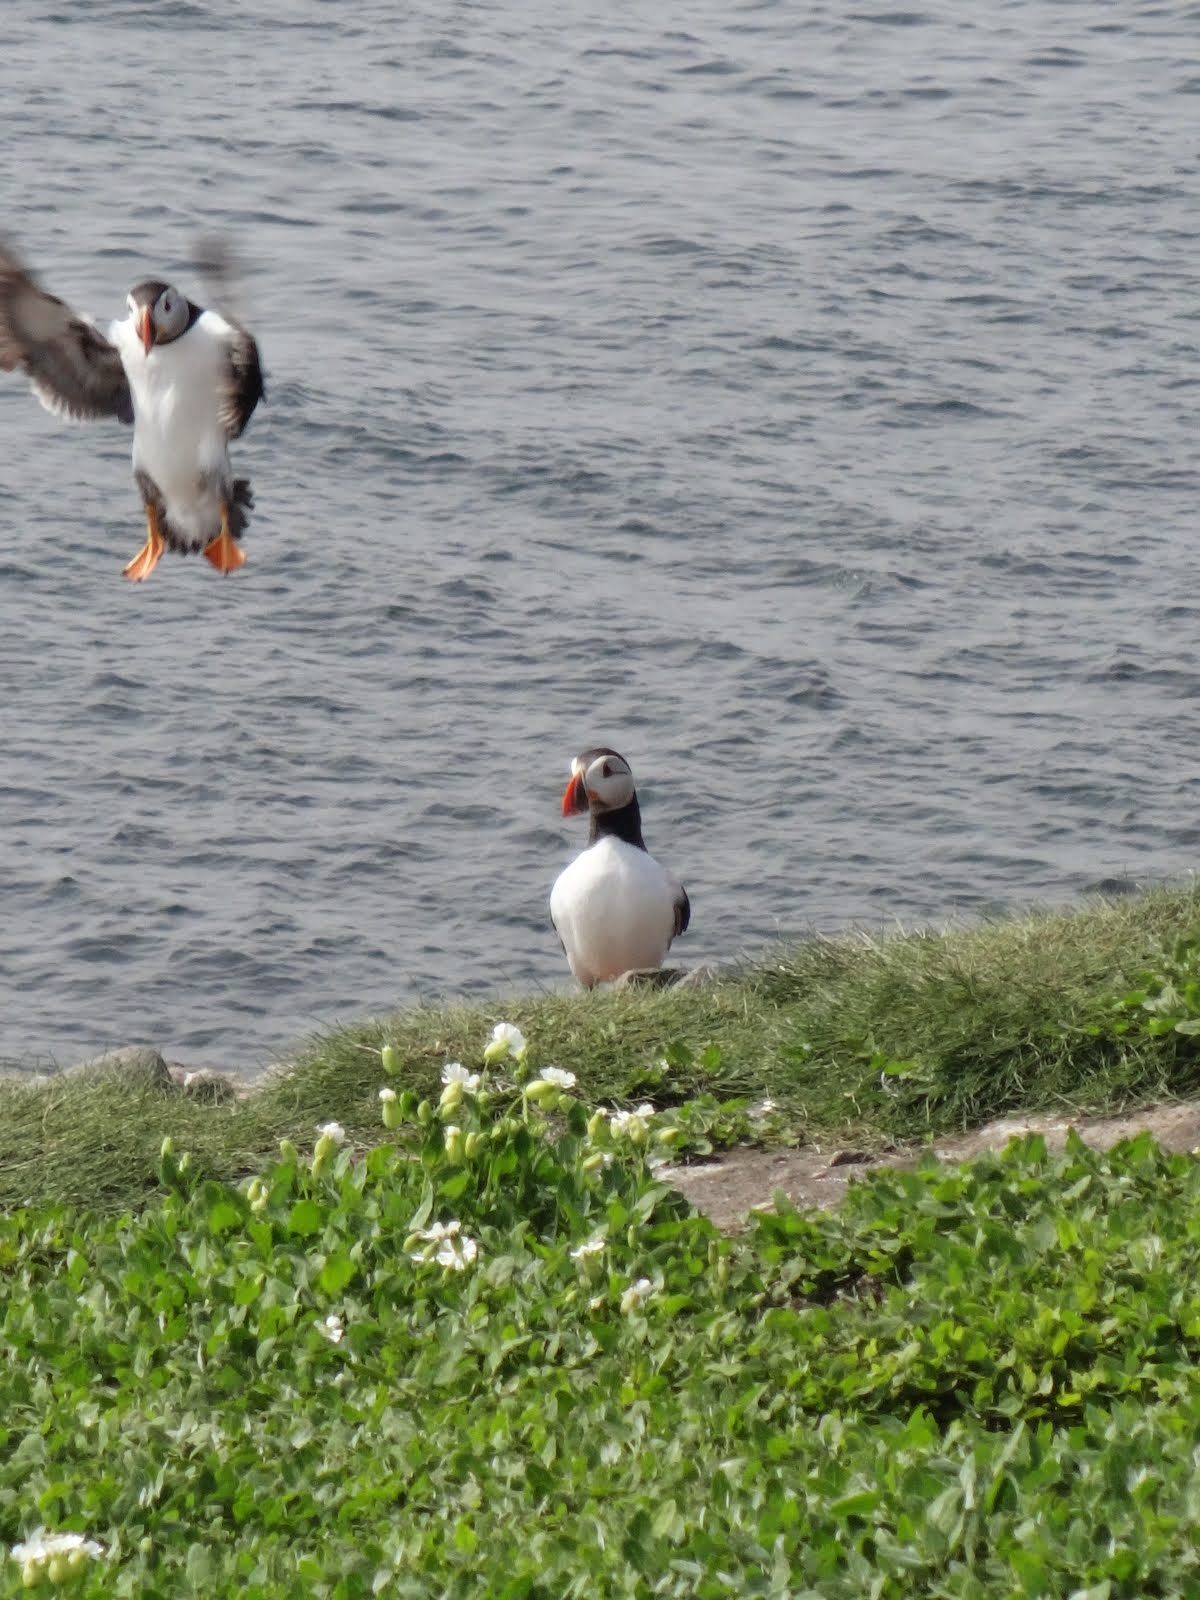 Puffin coming in for a landing